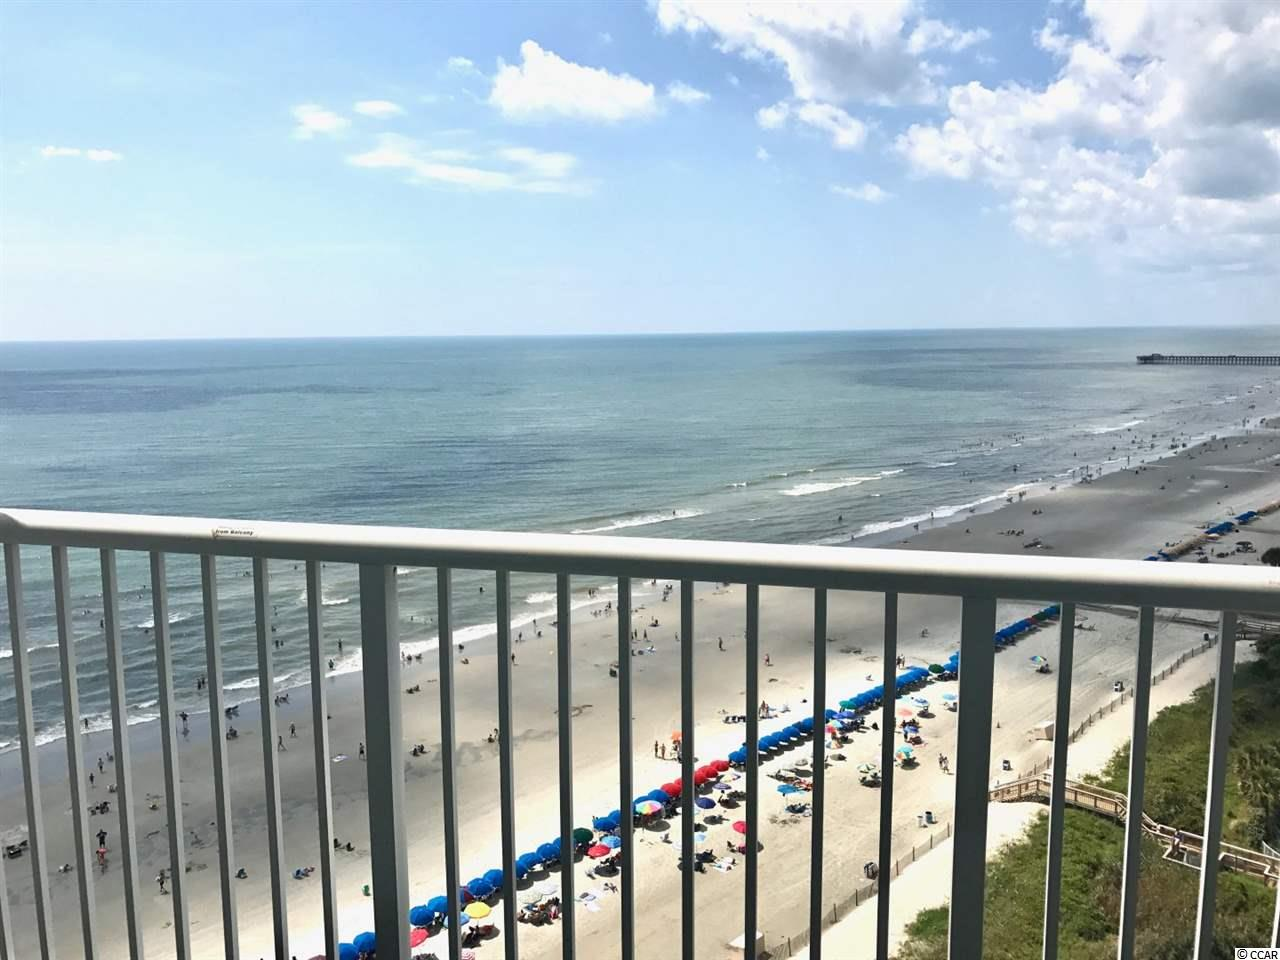 MLS #1717916 at  Seawatch North Tower for sale